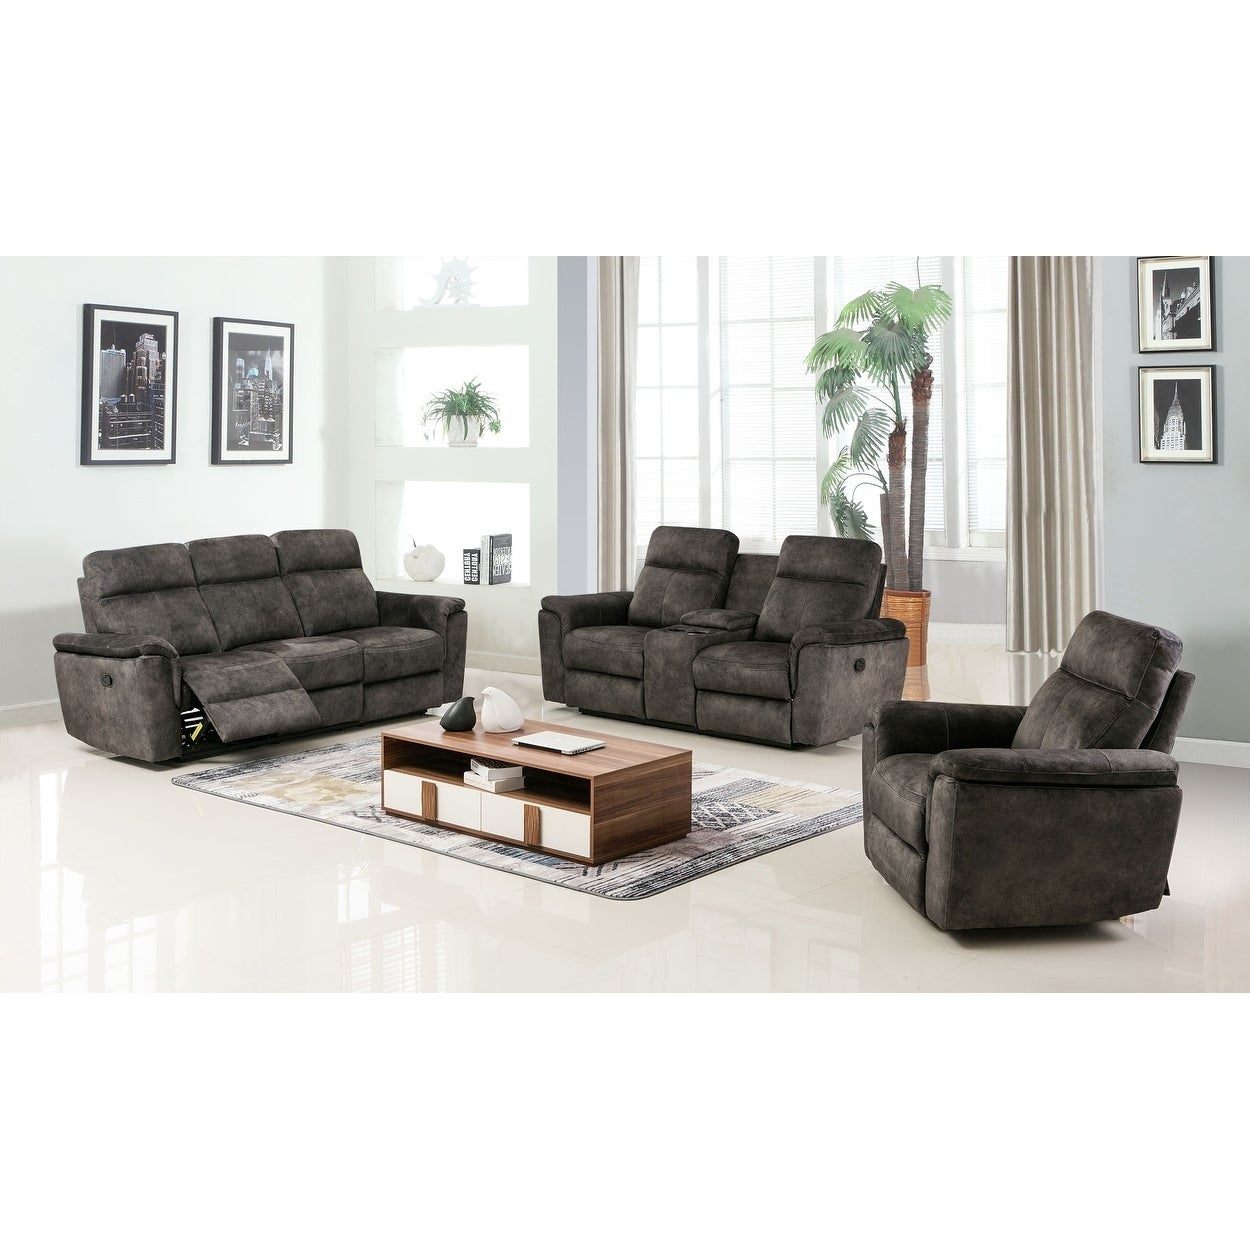 GU Industries Palomino Fabric Upholstered 3-Piece Living Room ...